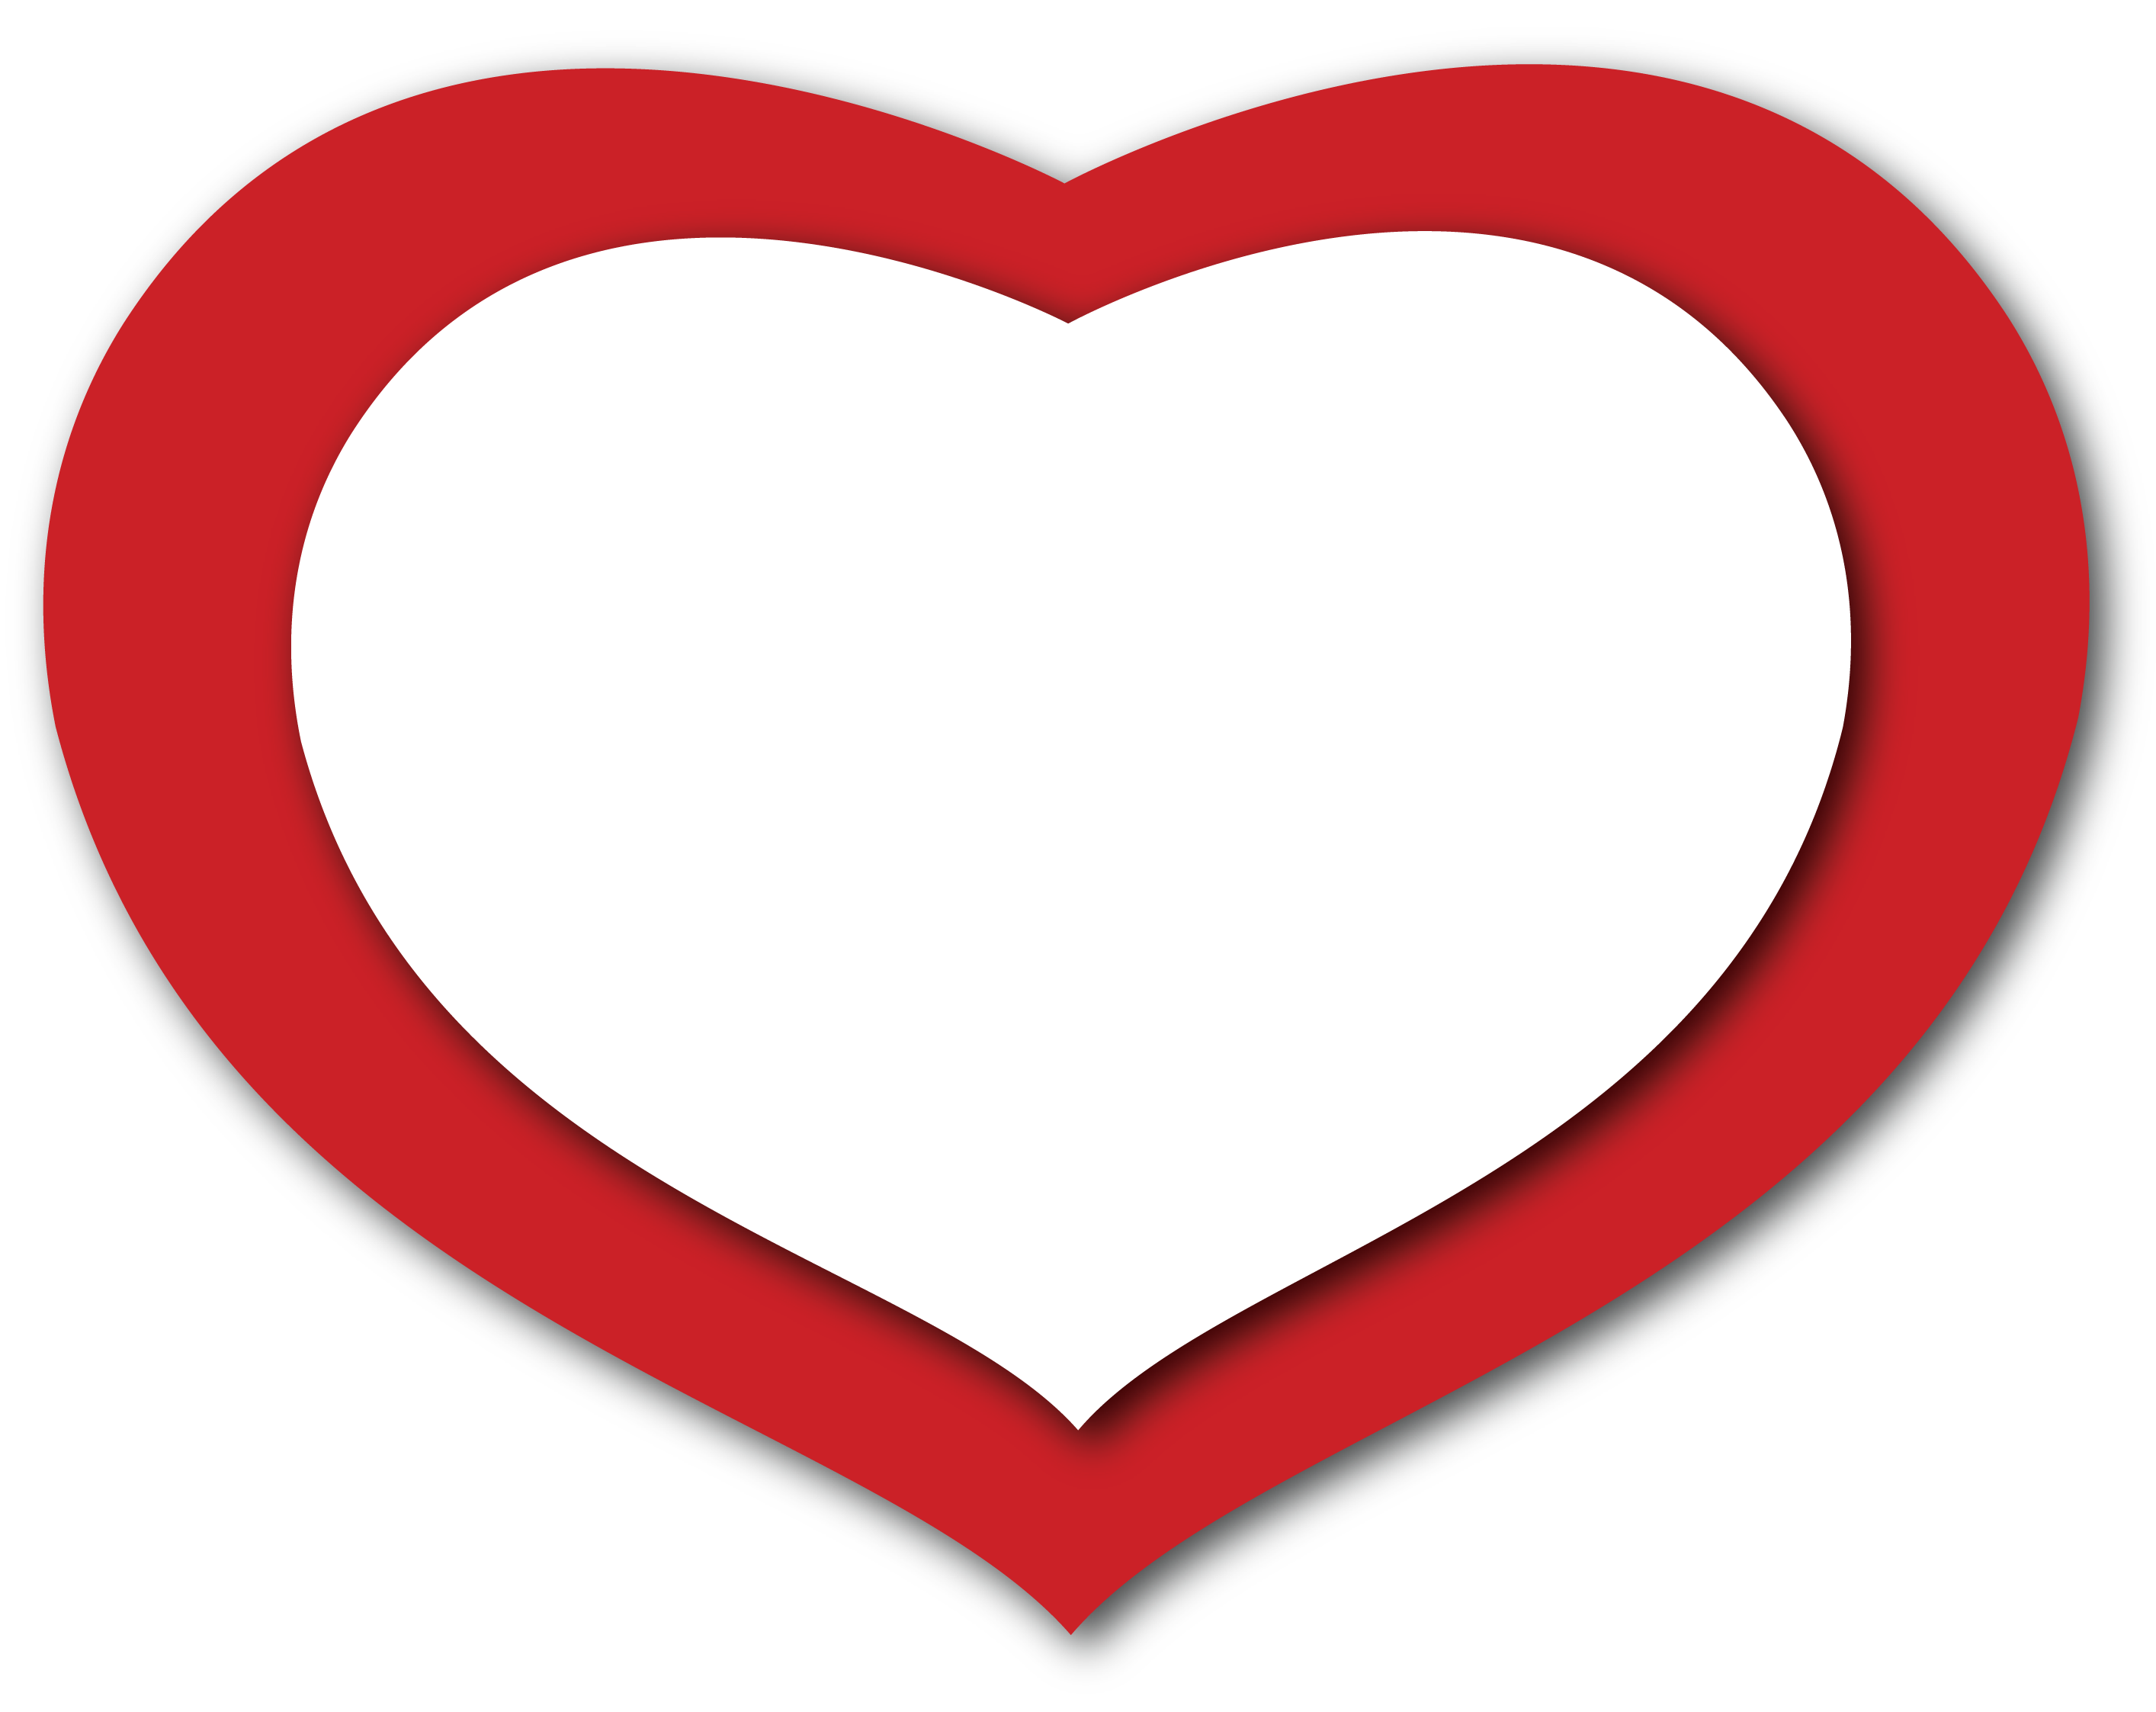 jpg black and white Heart clipart free black and white. Transparent red png gallery